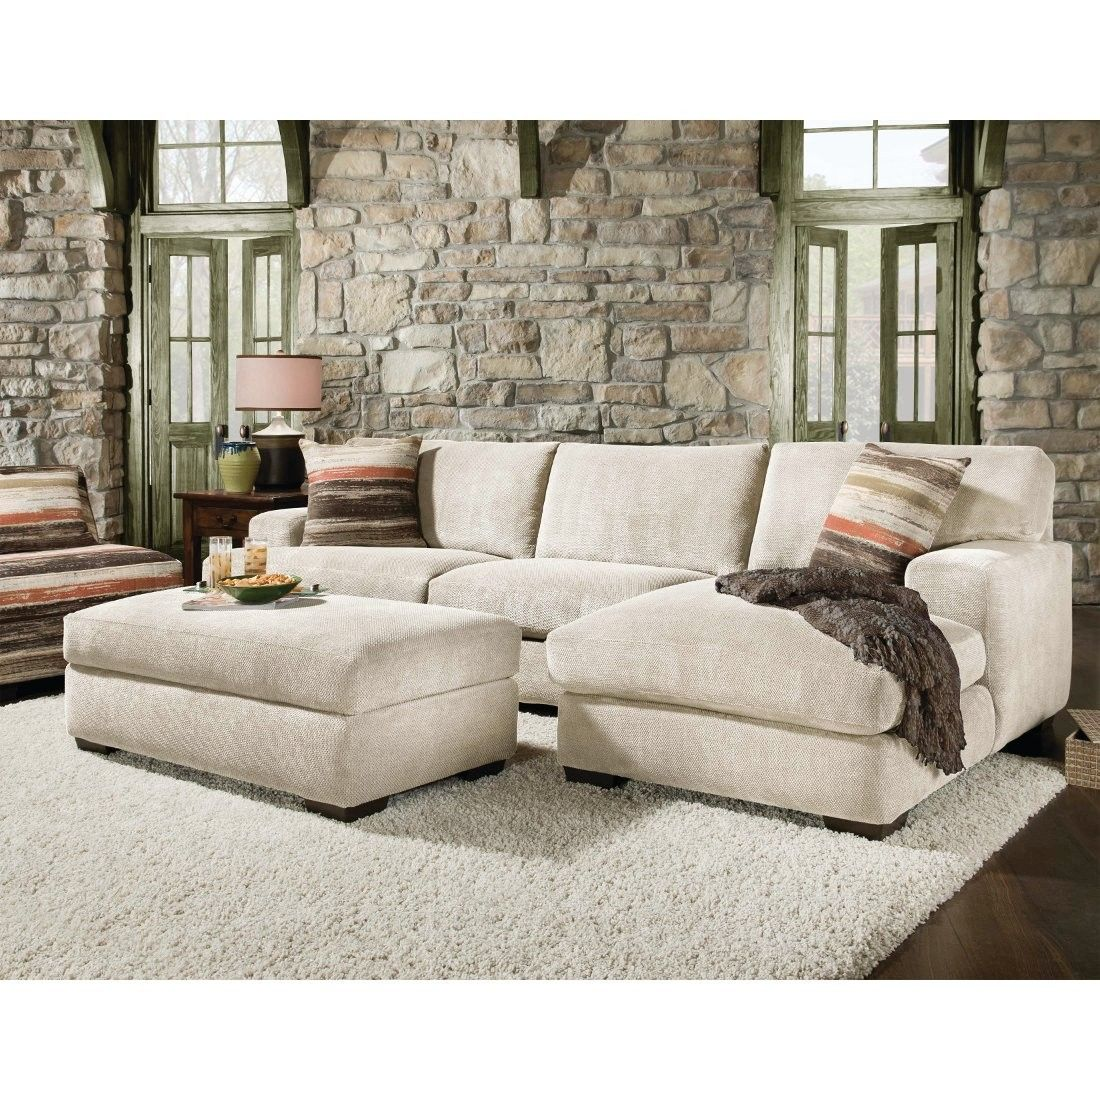 Sectional Sofas With Chaise Enjoy Ultimate Comfort